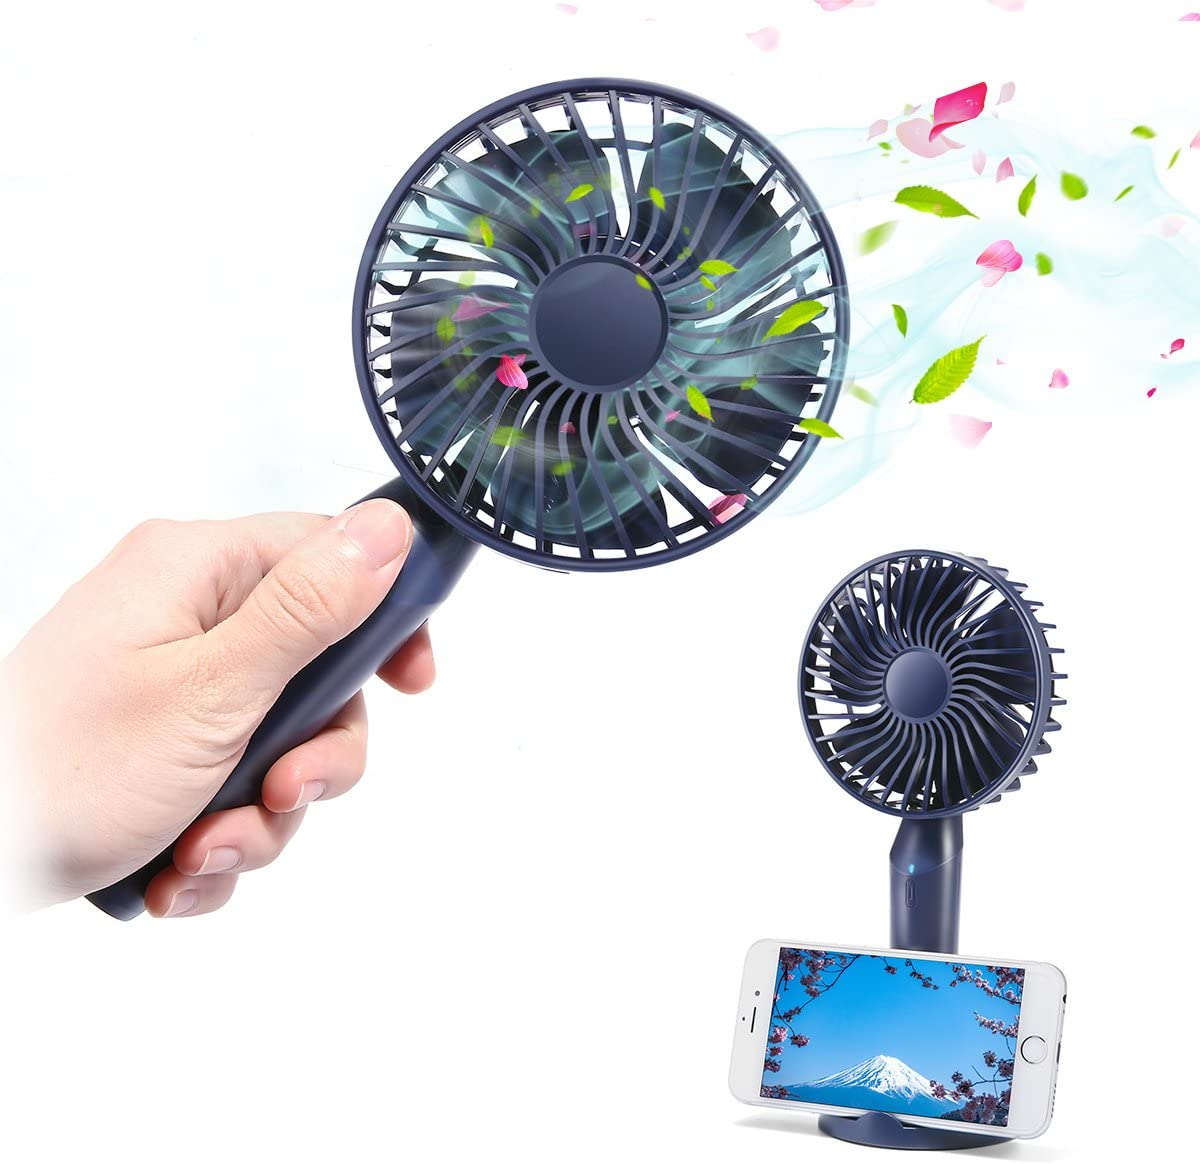 2000 mAh USB Rechargeable Portable Silent Desktop Handheld Fan for Outdoor Travel Camping